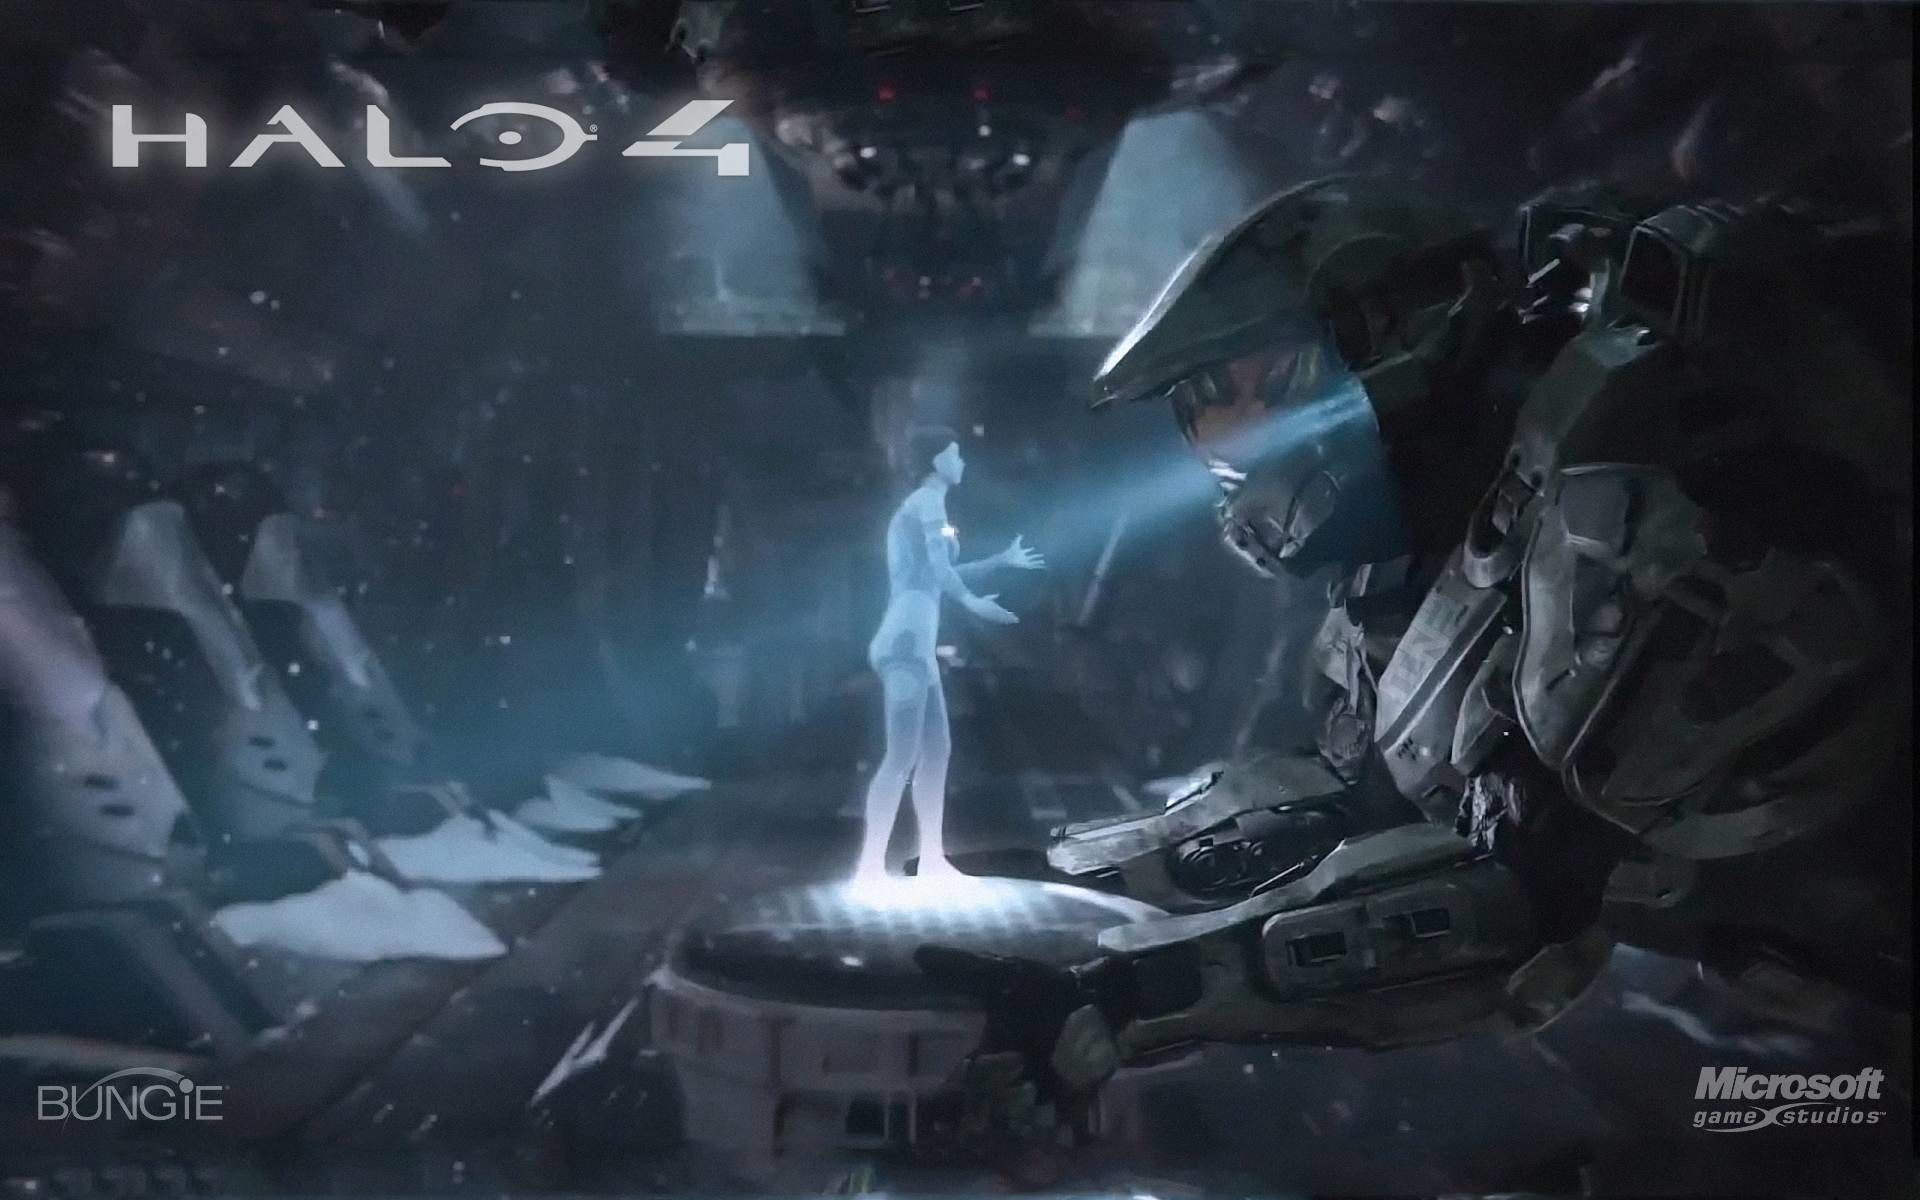 Halo 4 Wallpaper HD Exclusive by Ockre